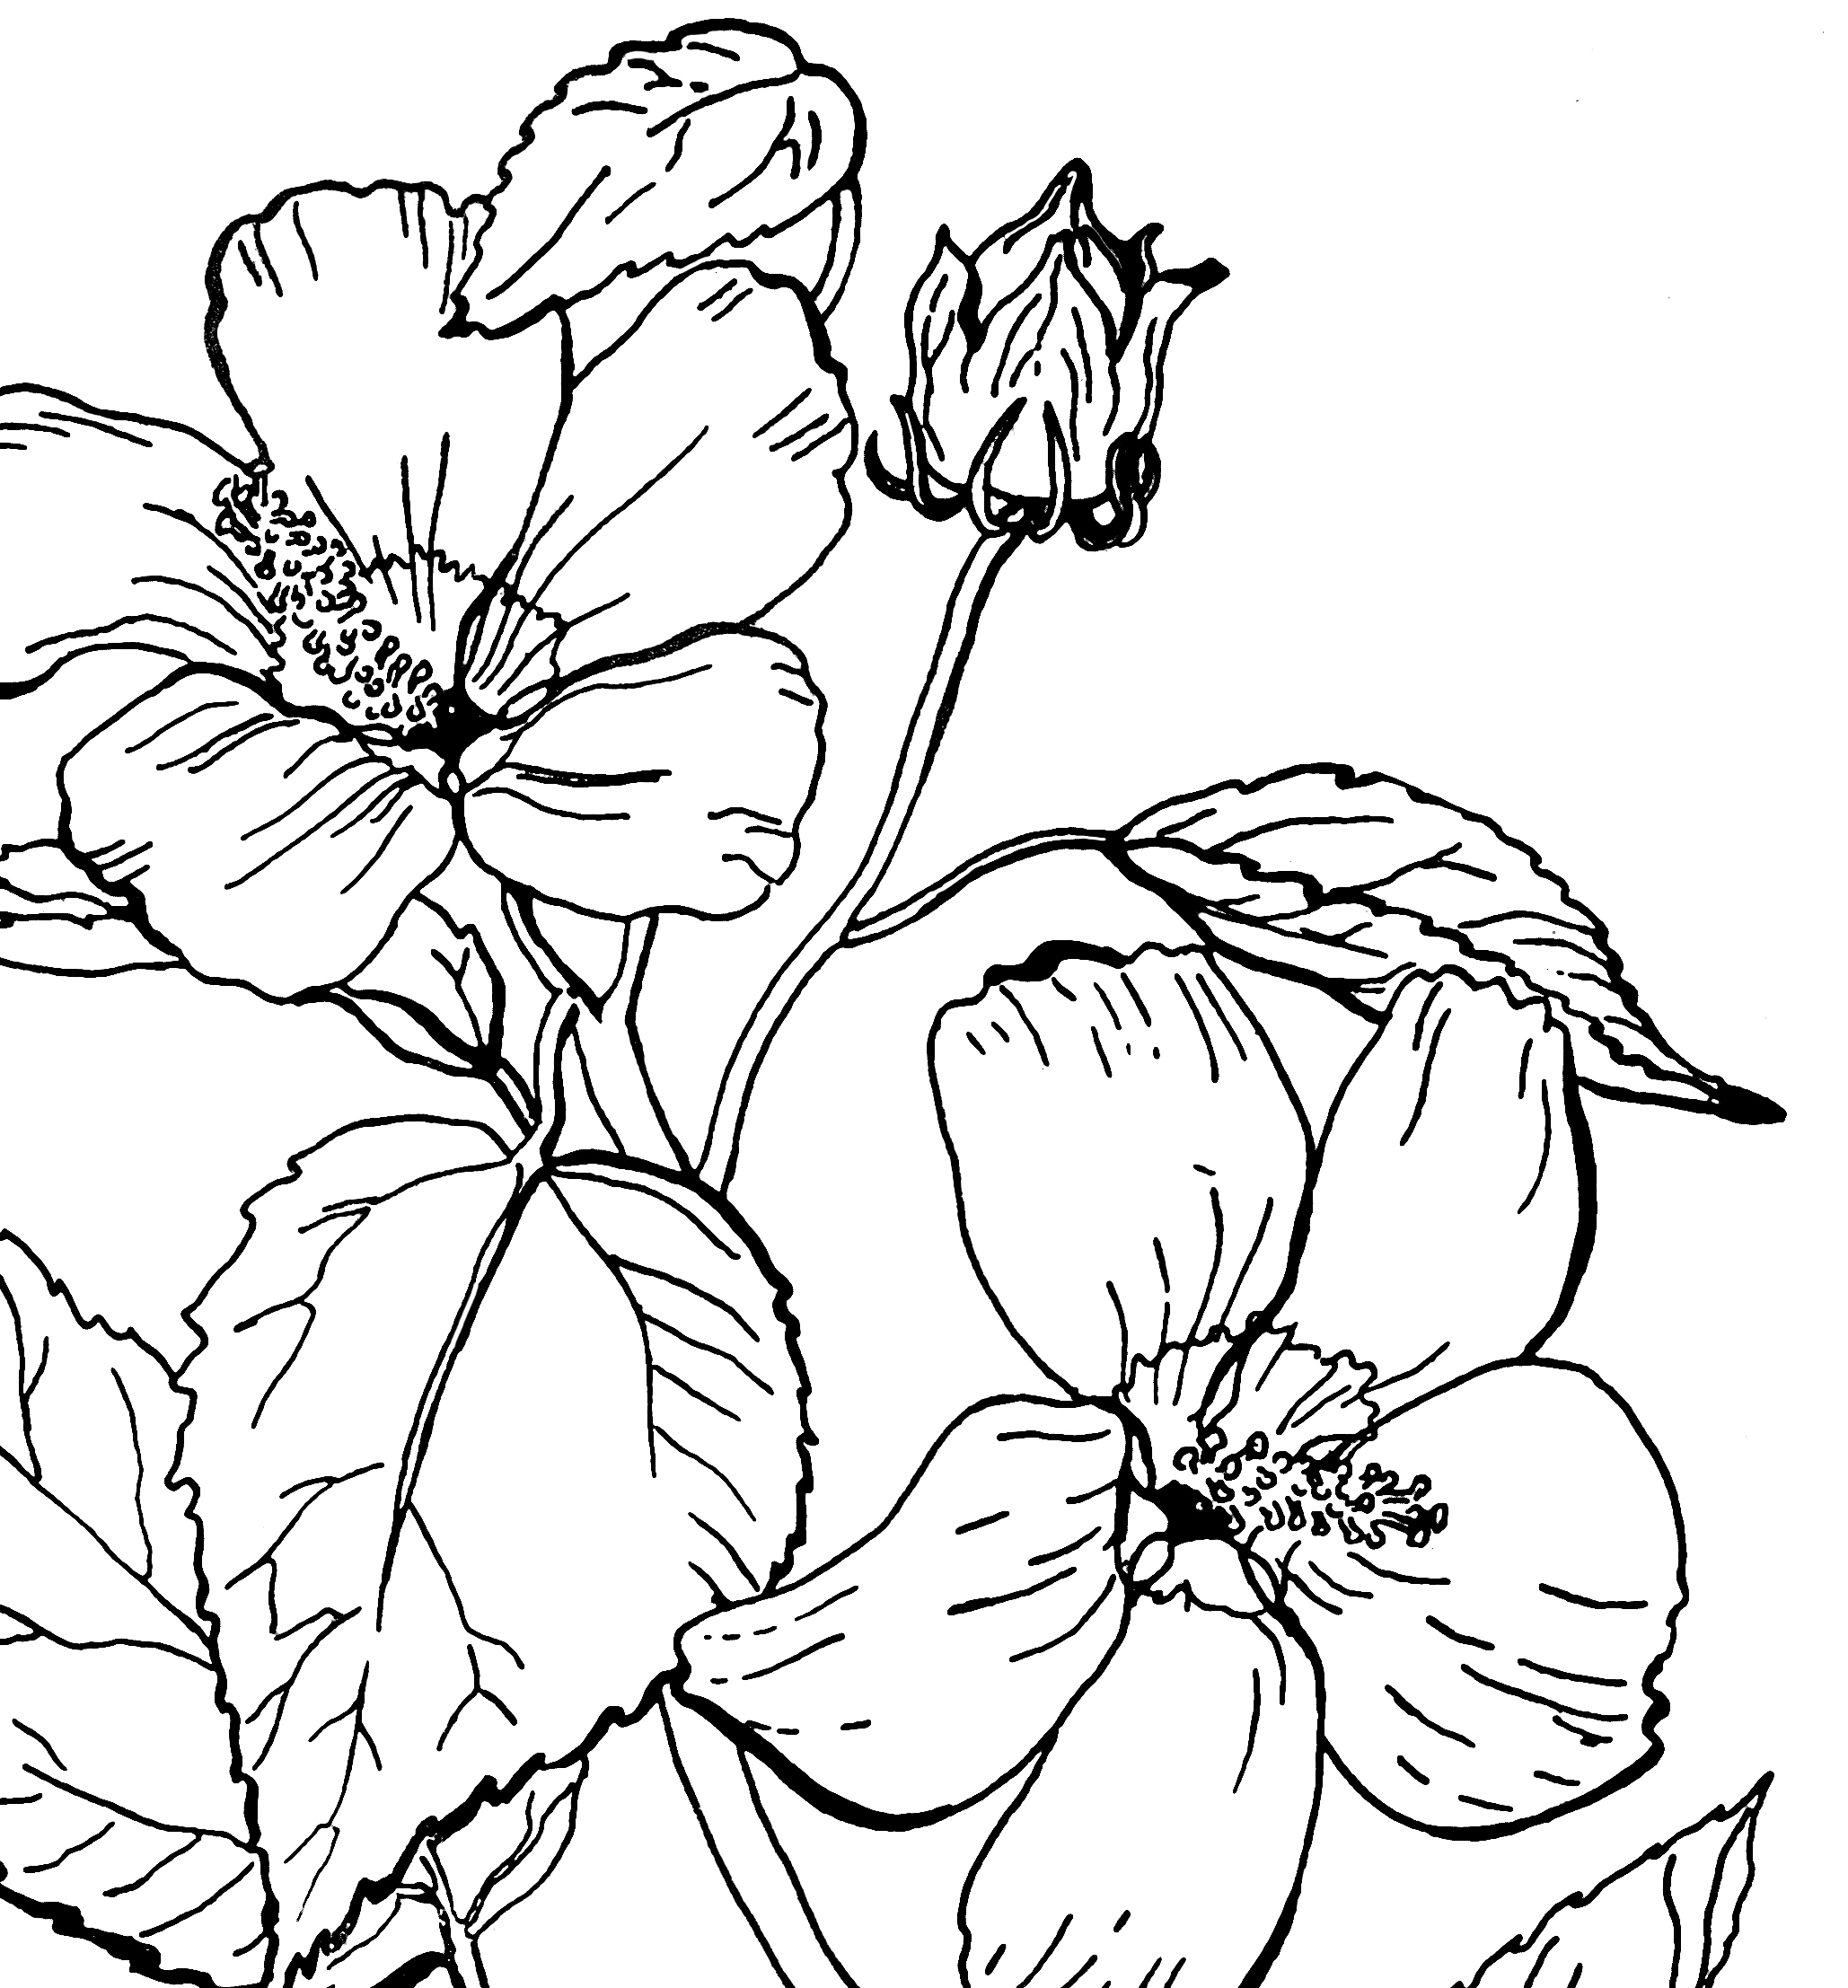 coloring pages rose roses coloring pages to download and print for free rose pages coloring